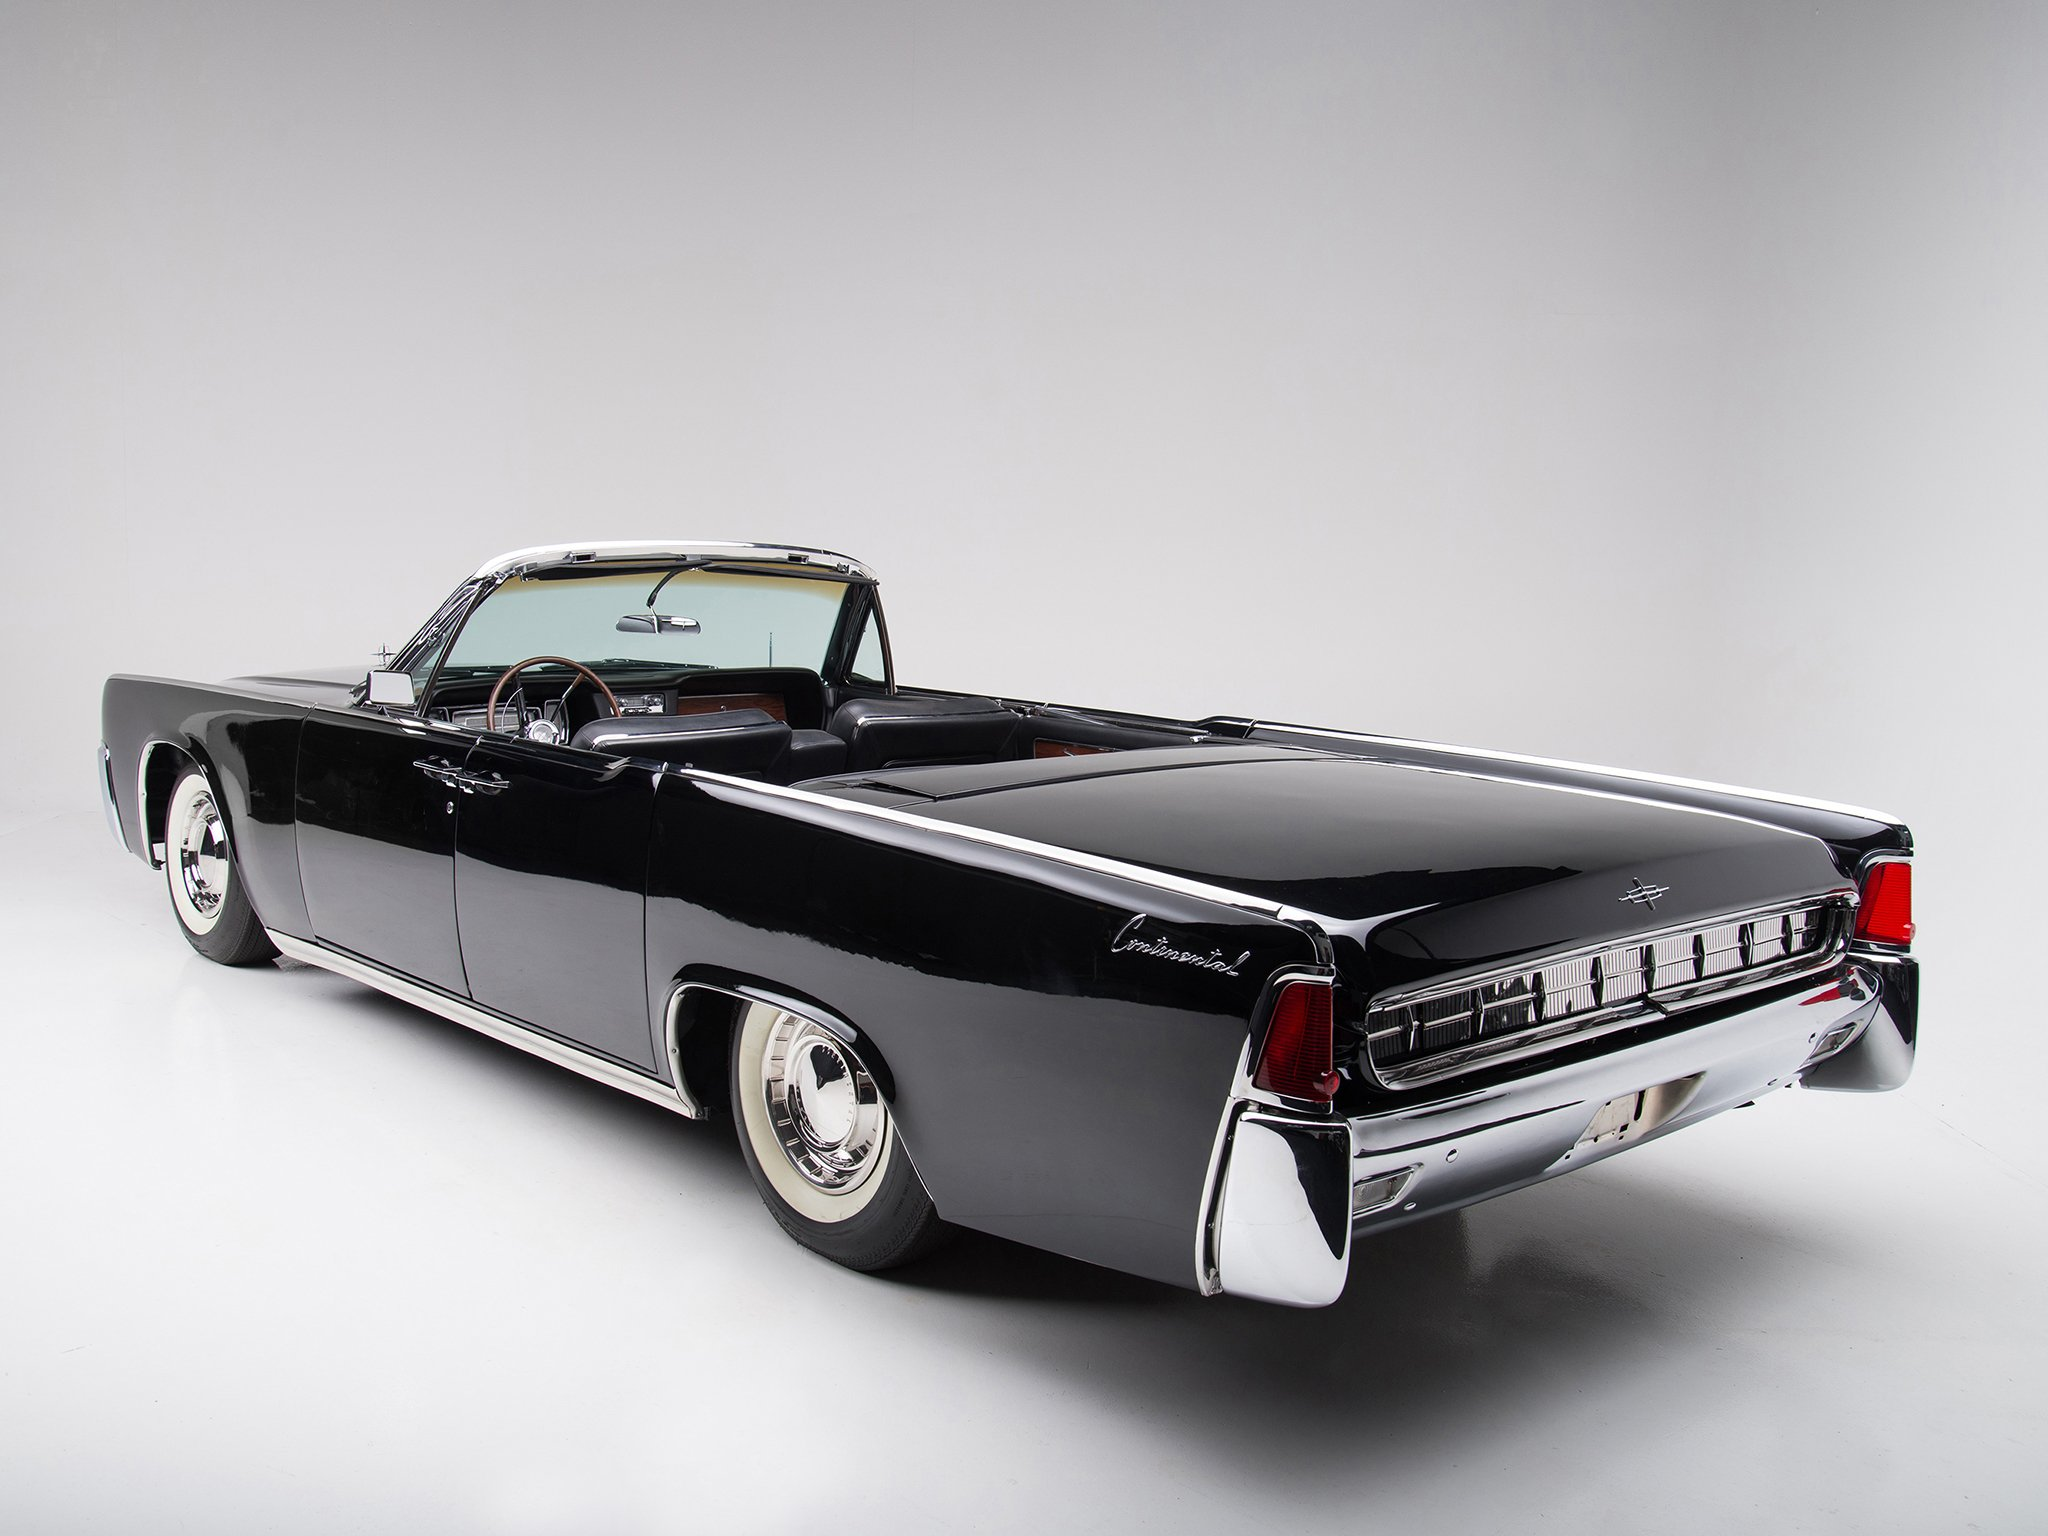 1963 lincoln continental convertible luxury classic f